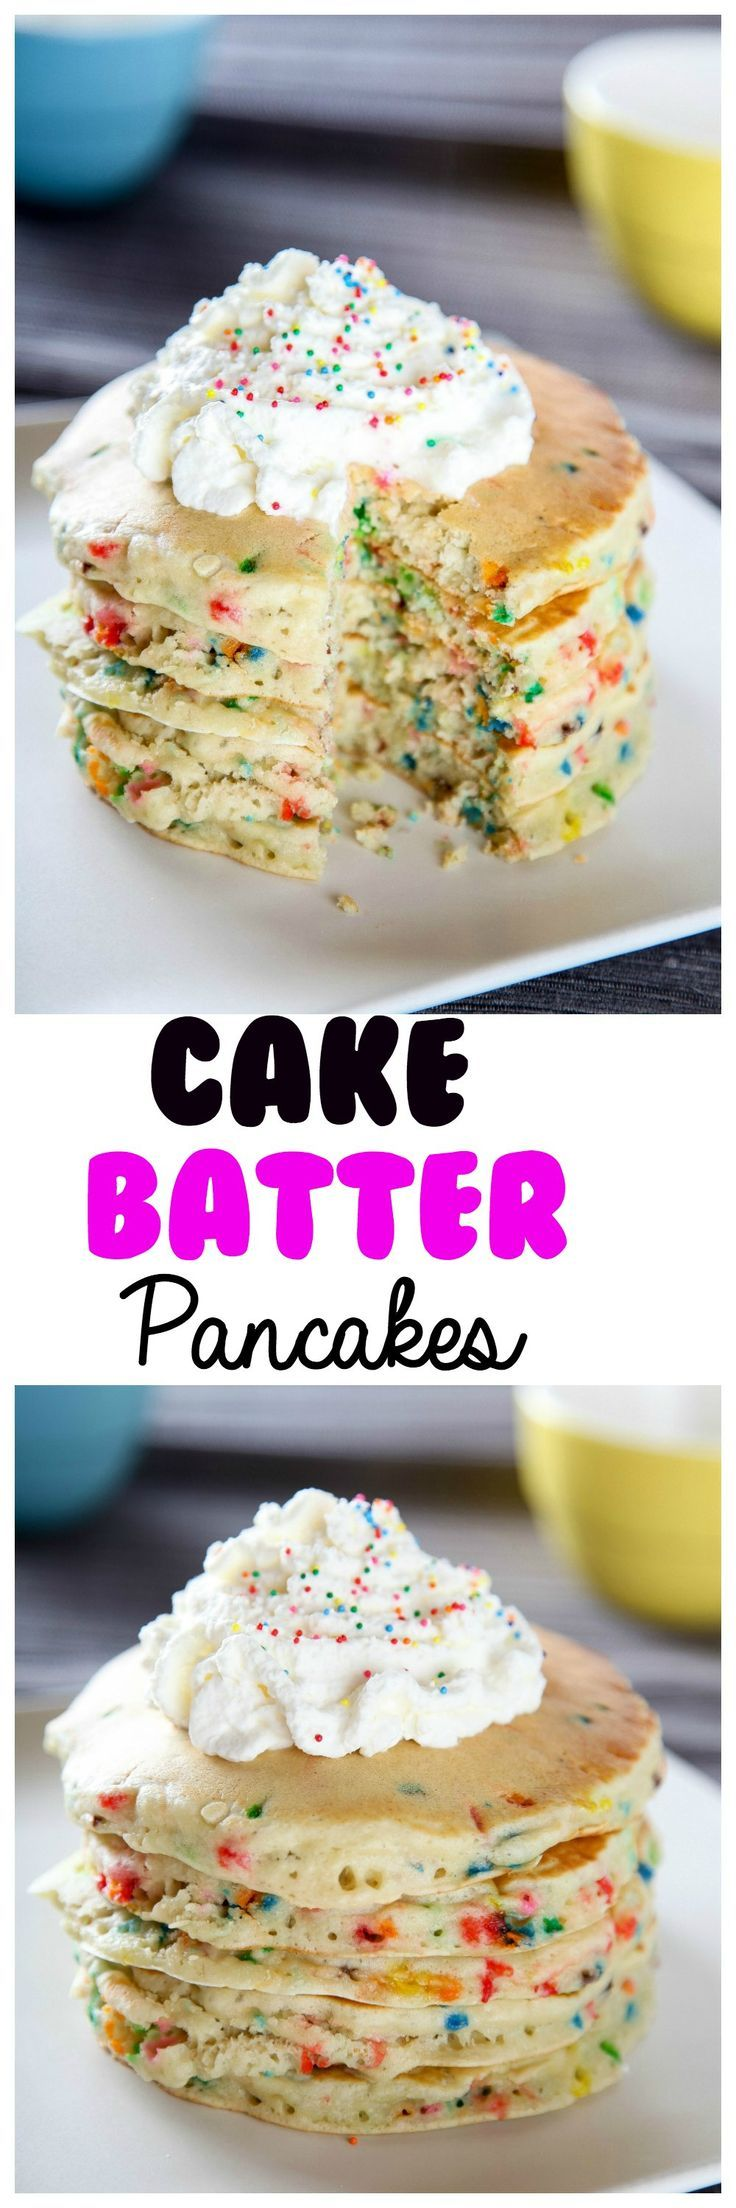 Cake Batter Funfetti Pancakes: Fluffy melt in your mouth pancakes topped with a sweetened whipped cream. Now you can enjoy the flavor of cake: for breakfast!